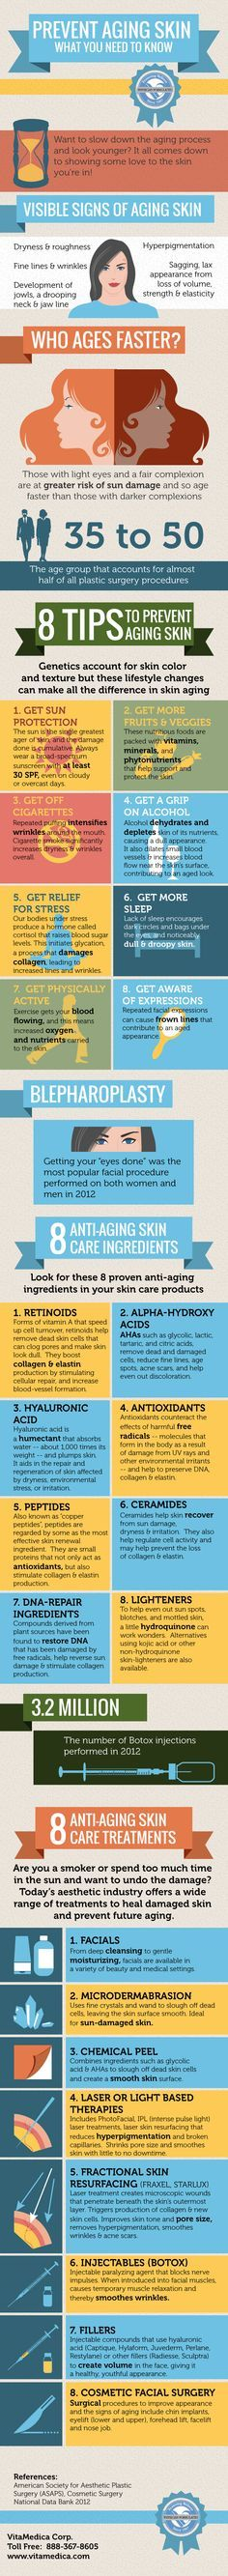 Infographic: Prevent Aging Skin What You Need To Know @stylexpert